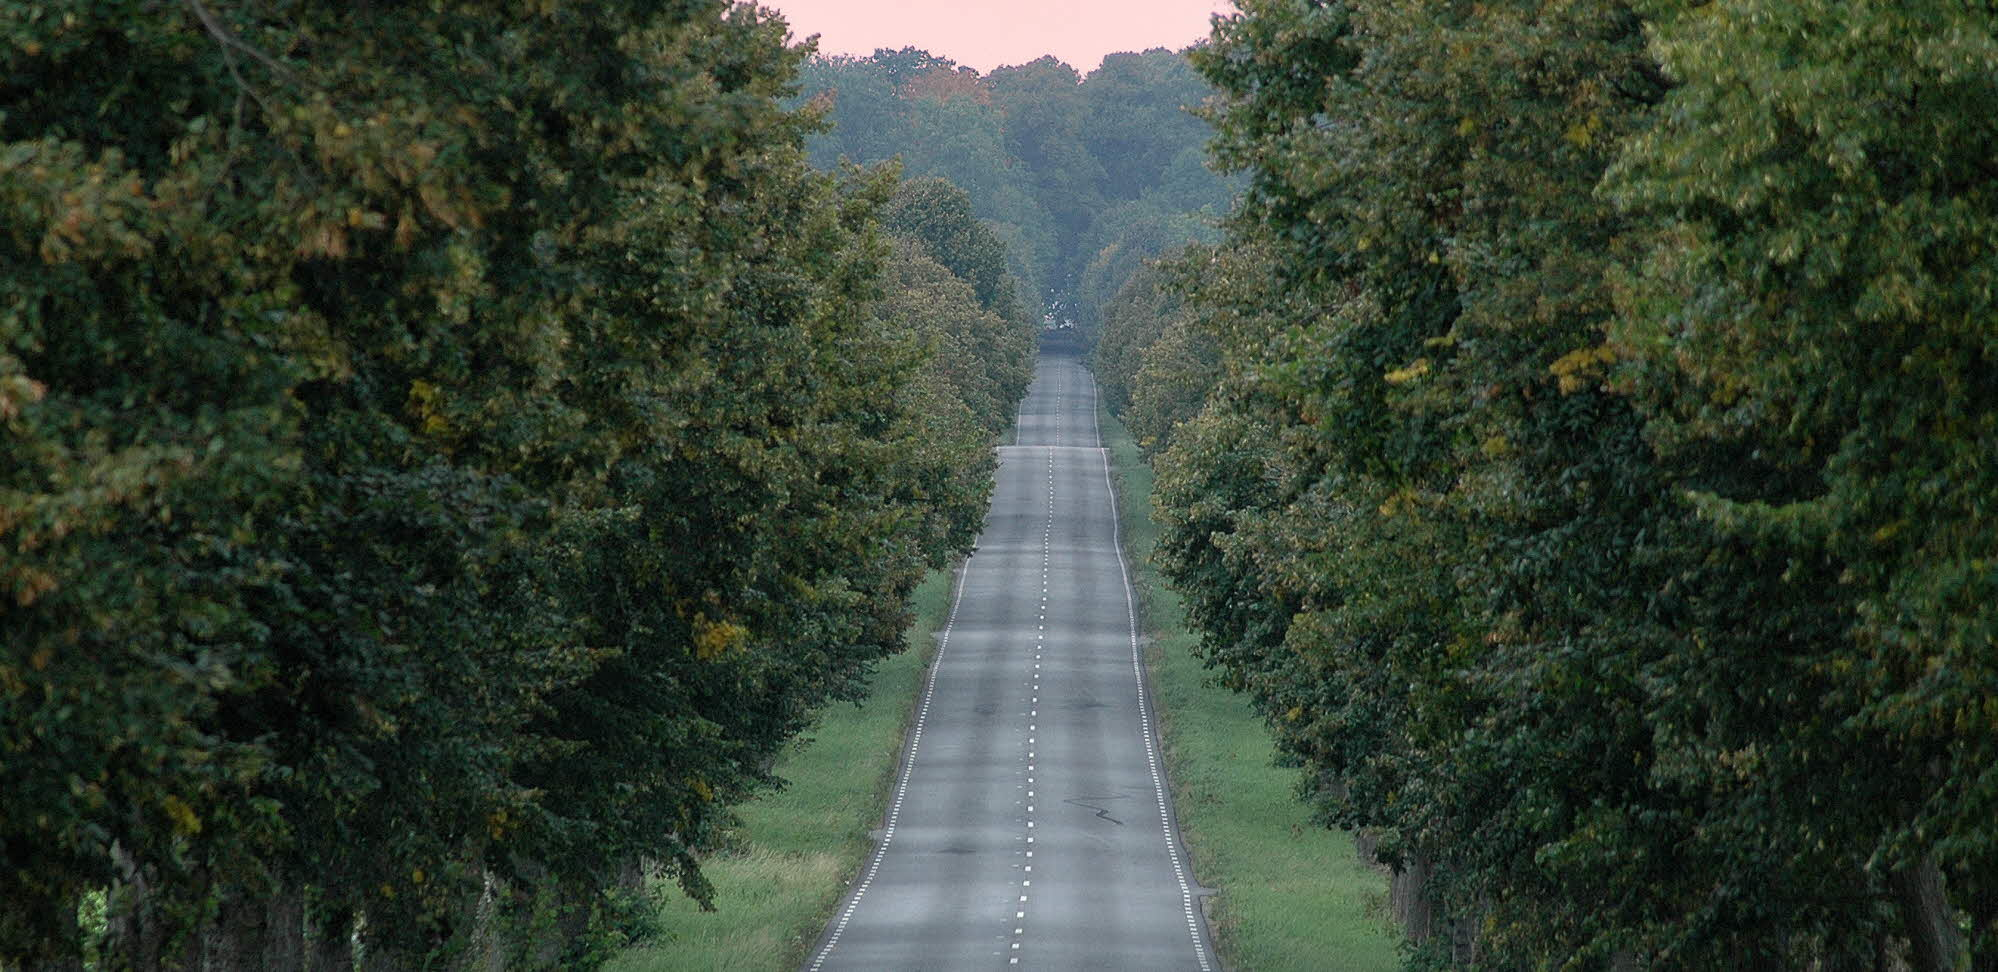 road disappearing into the distance